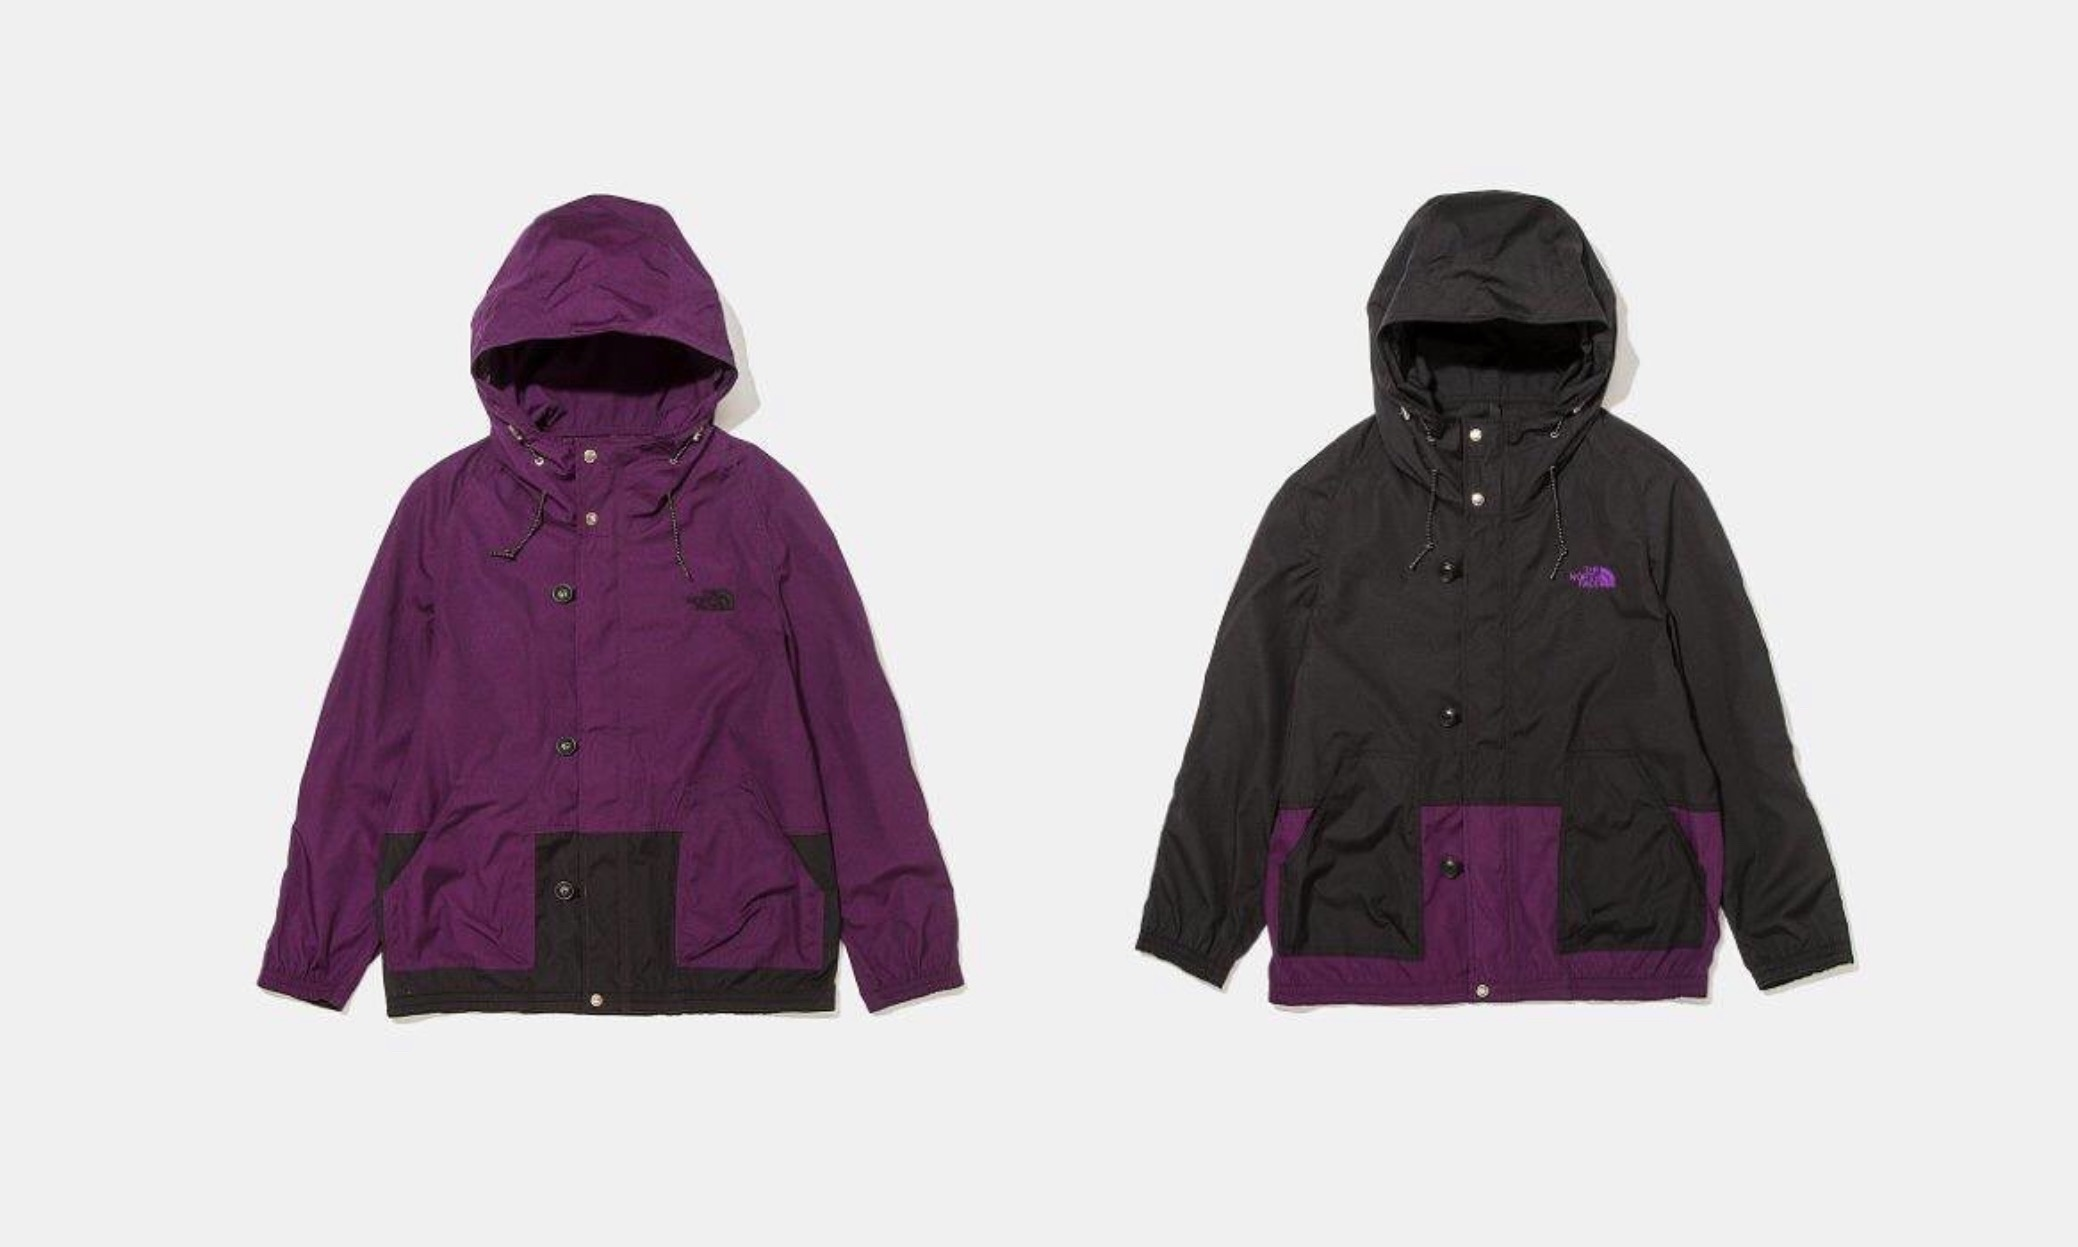 THE NORTH FACE PURPLE LABEL x monkey time 即将发布全新联名限定系列